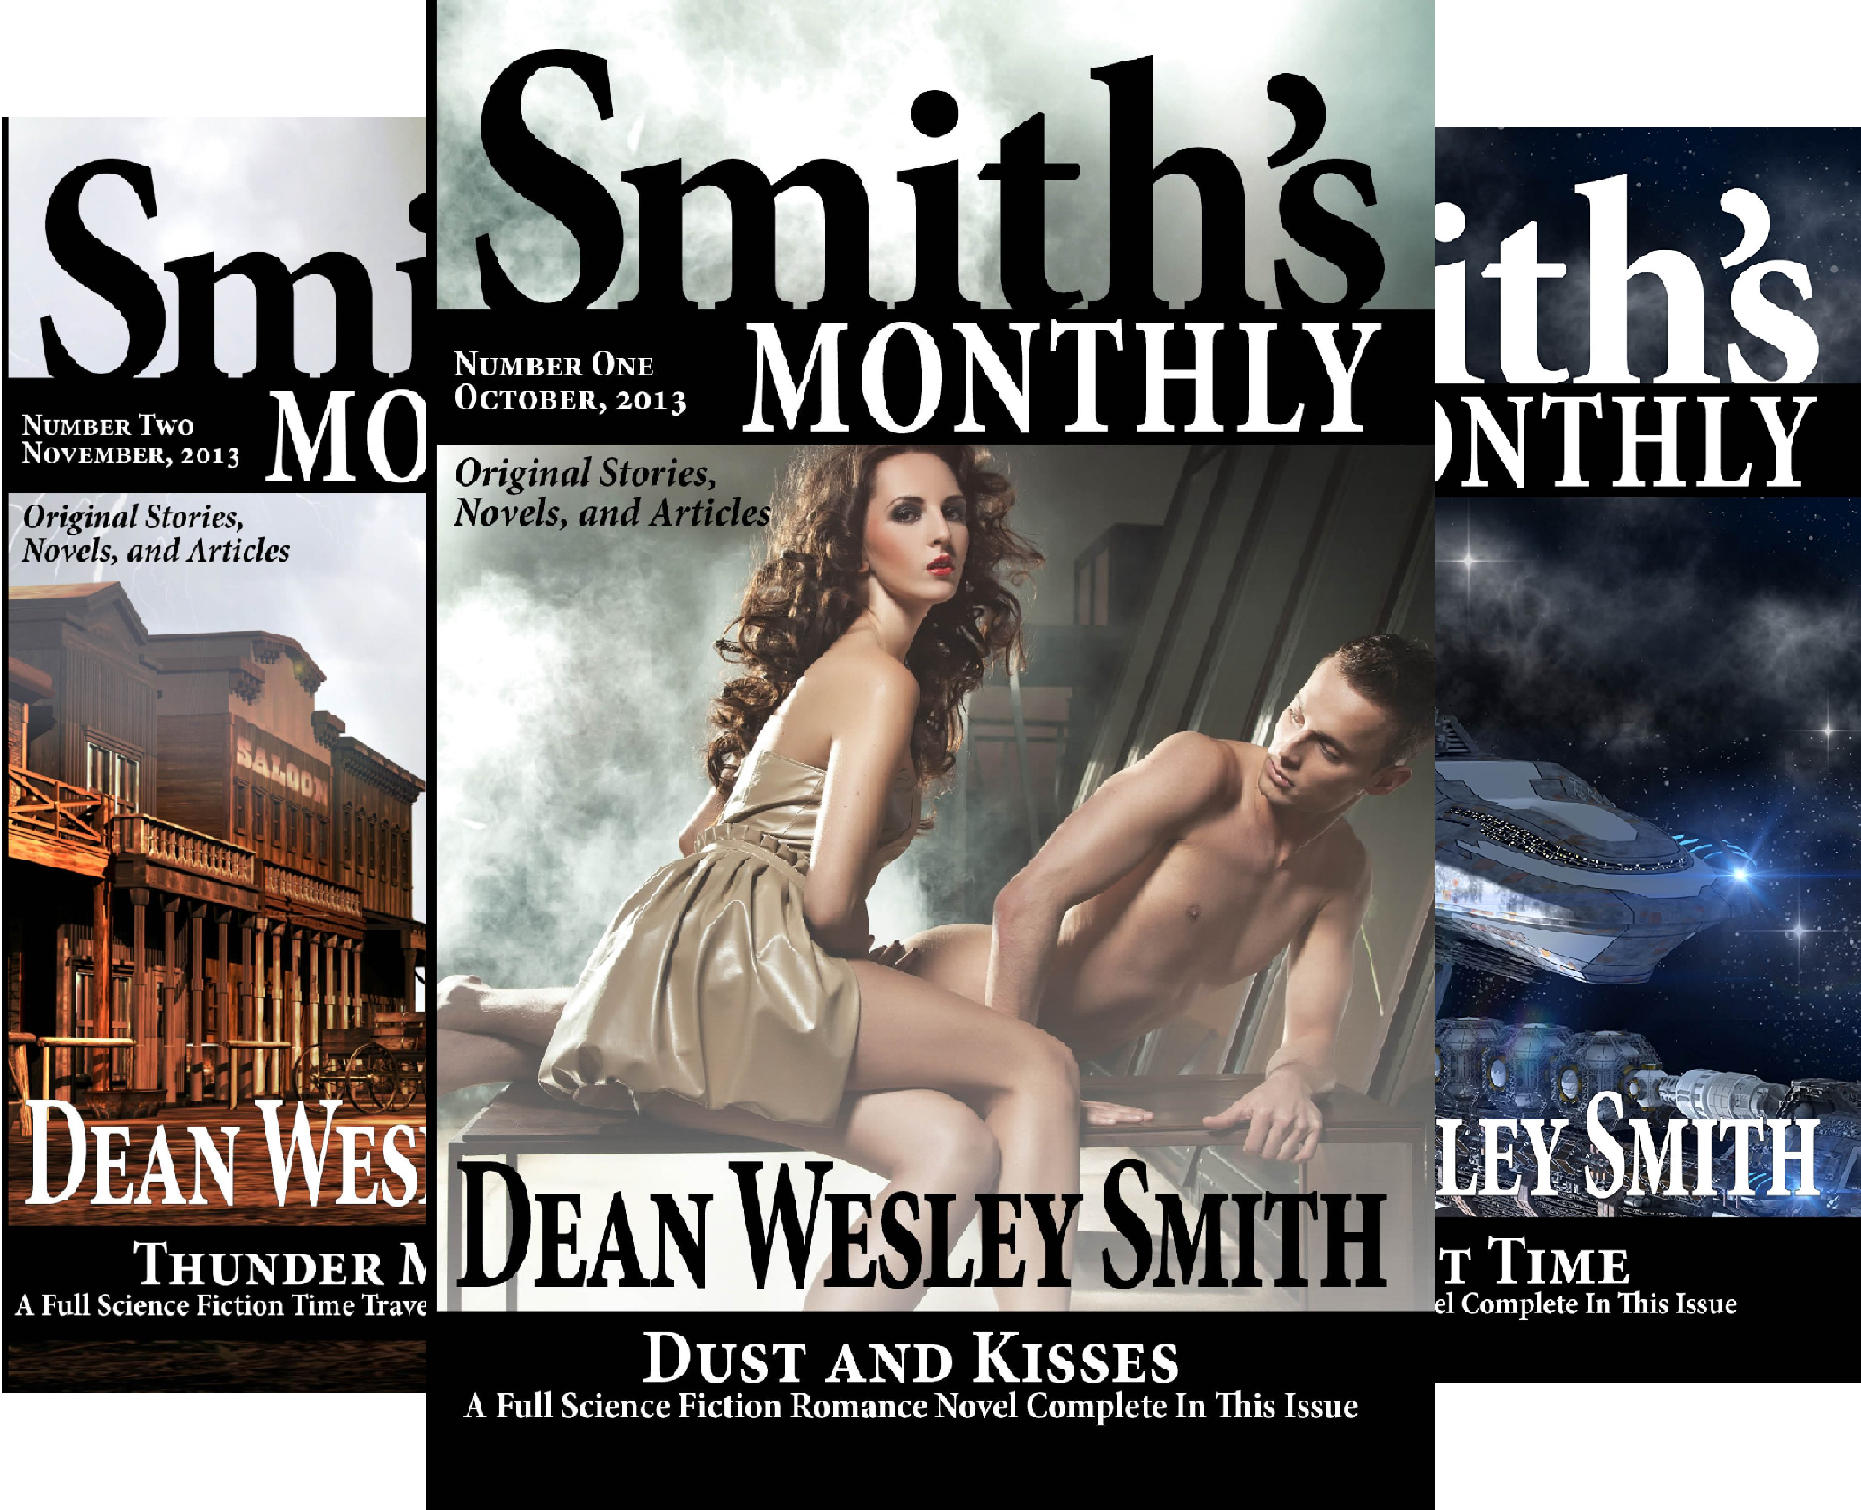 Smith's Monthly (44 Book Series)